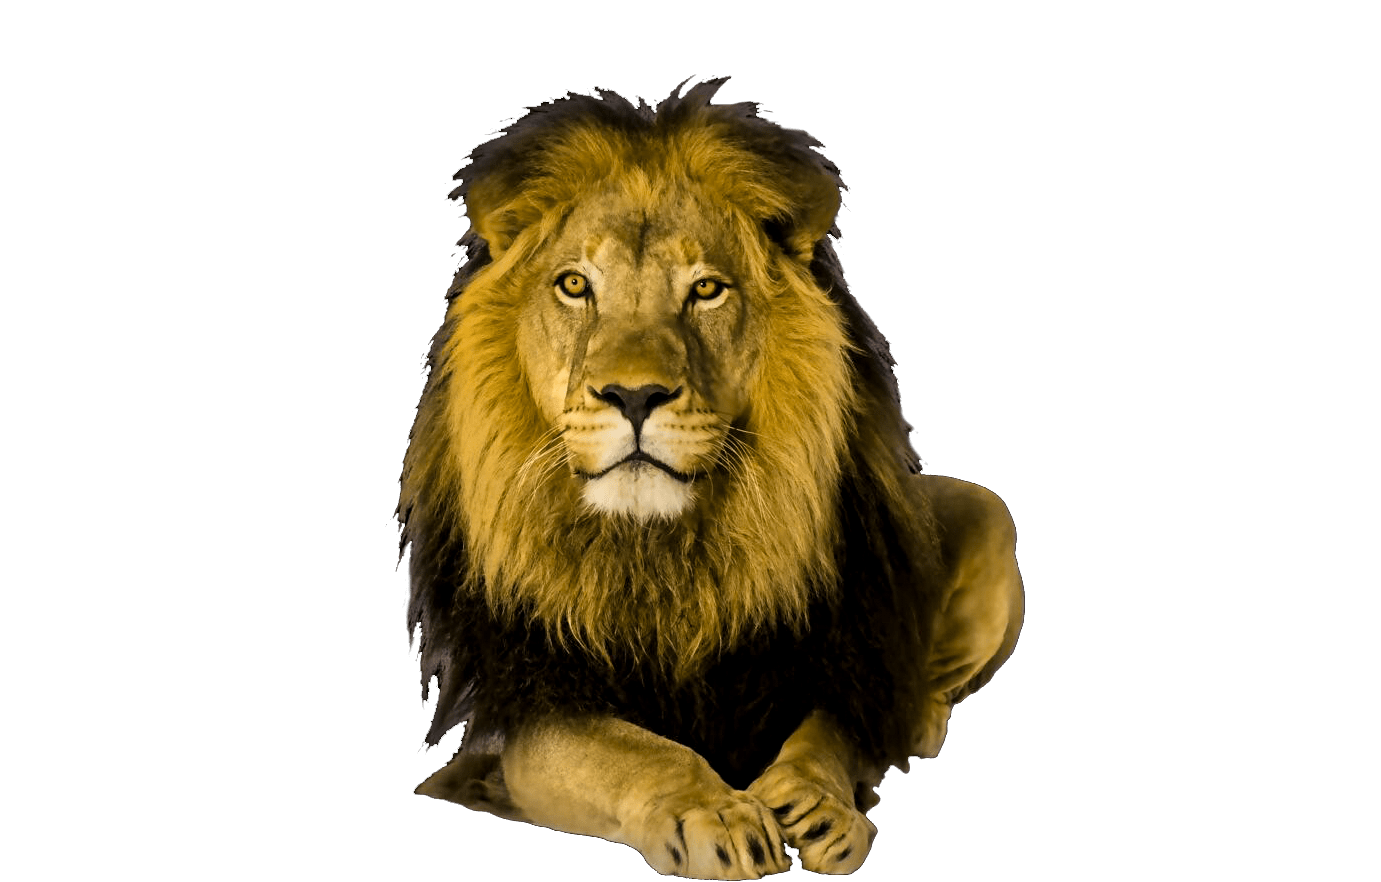 Cute animal png. Wild animals transparent images